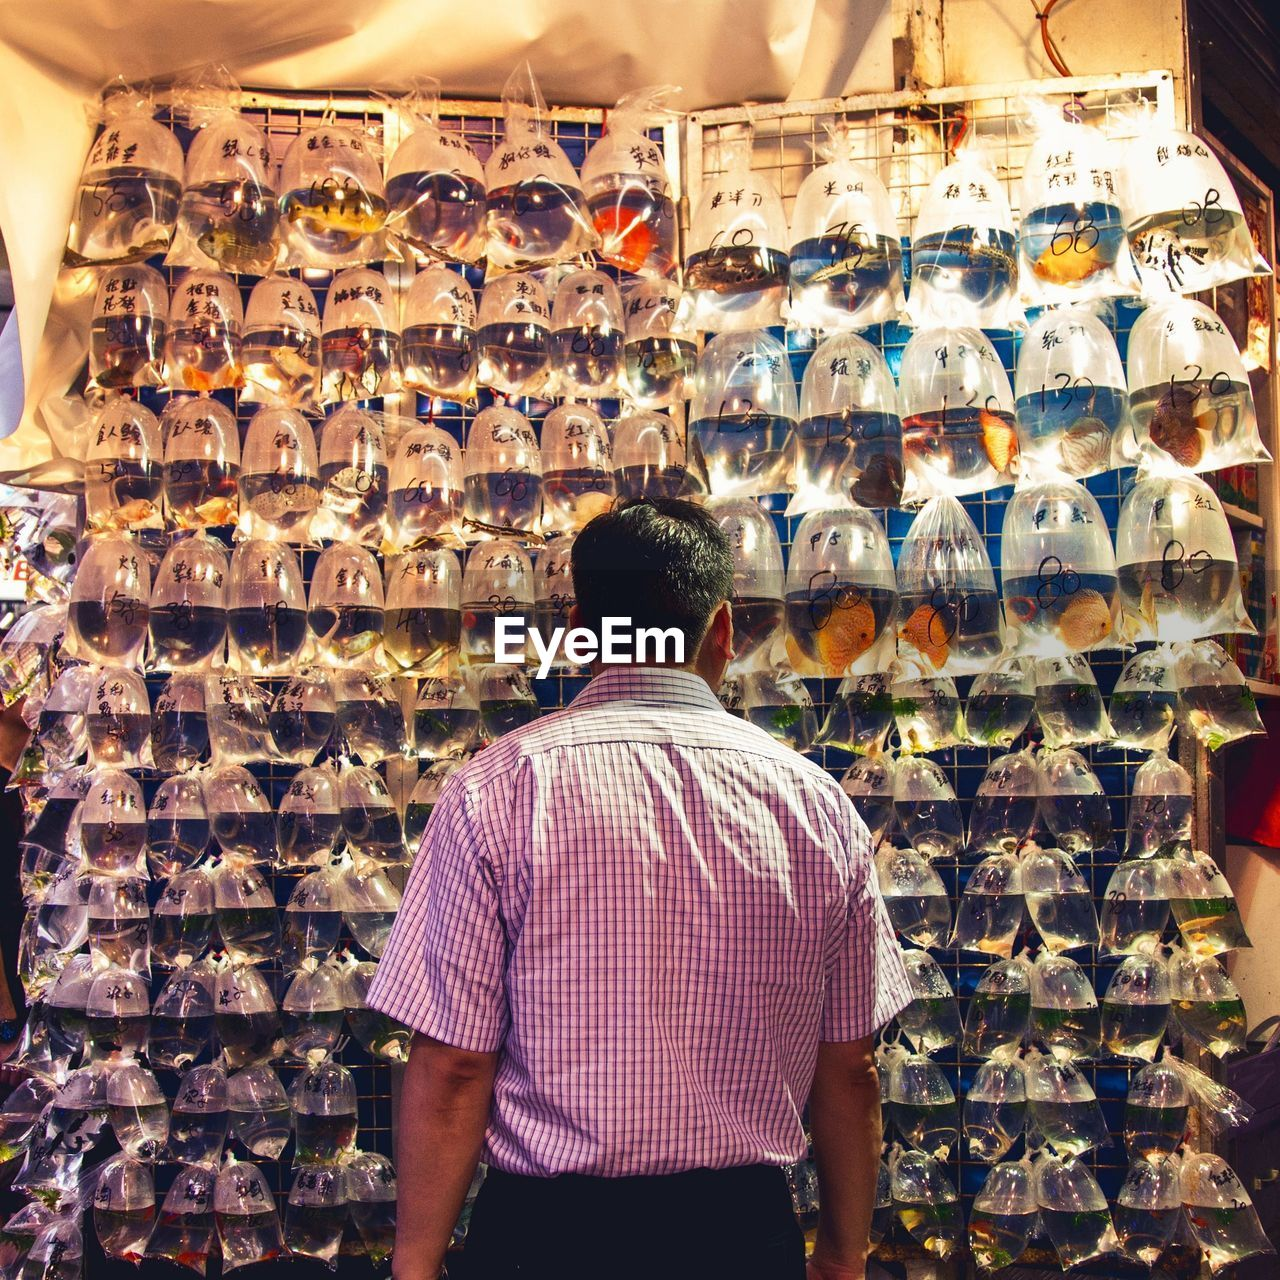 Rear View Of Man Looking At Fish In Plastic Bags For Sale In Shop